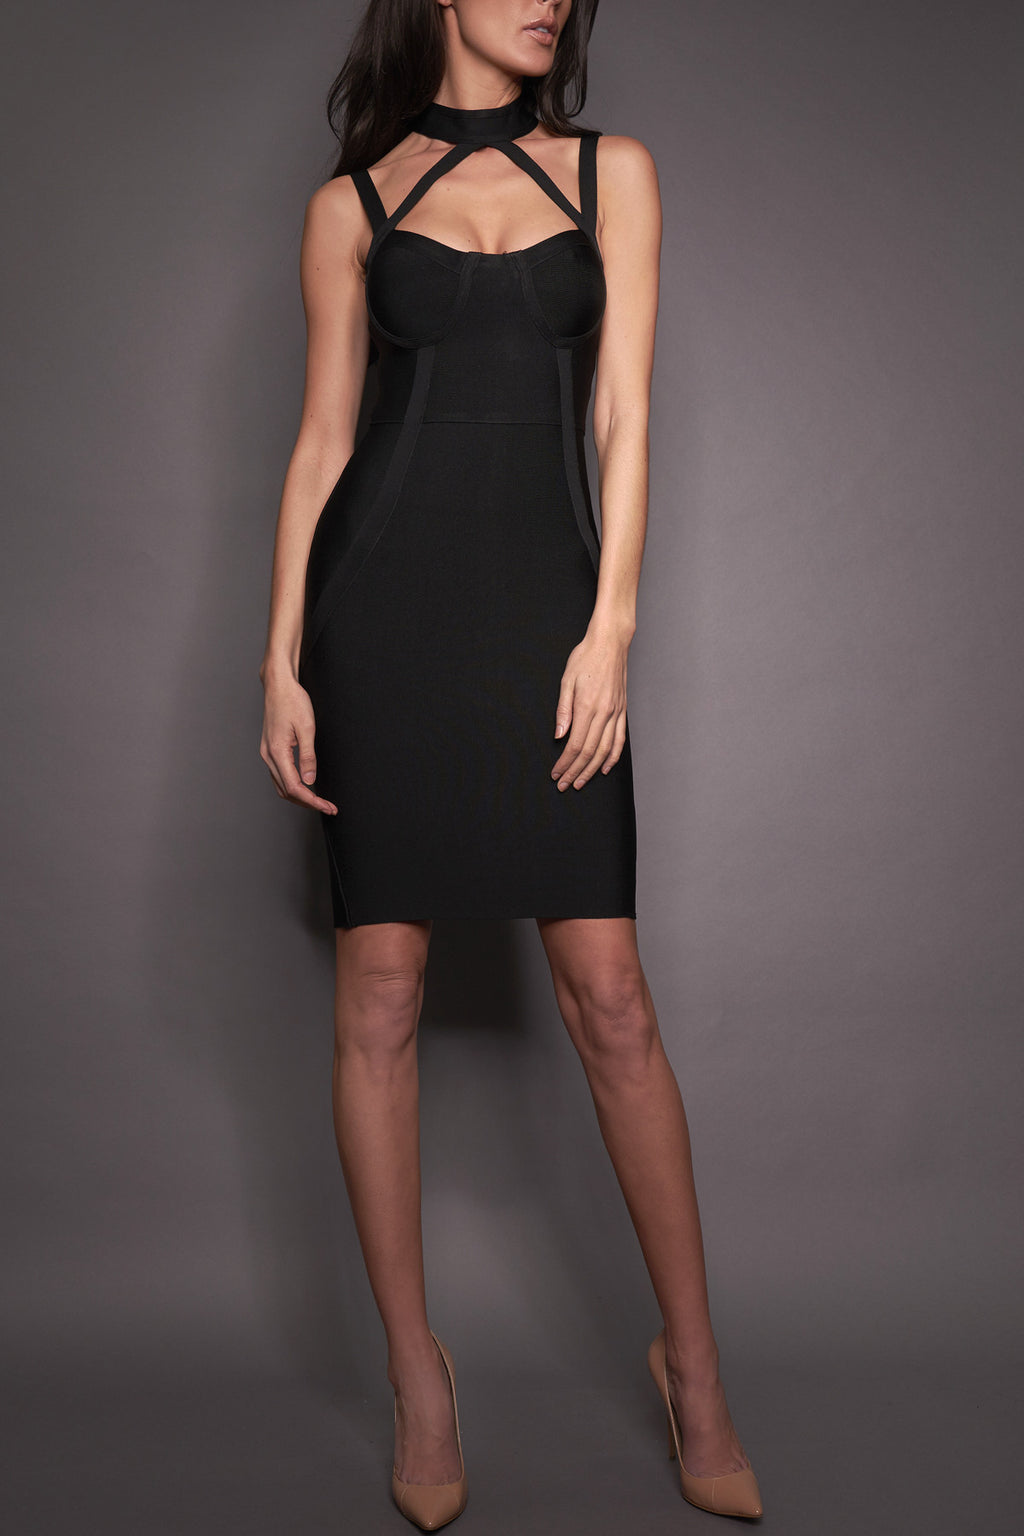 Stelli Black Cut Out Bandage Dress